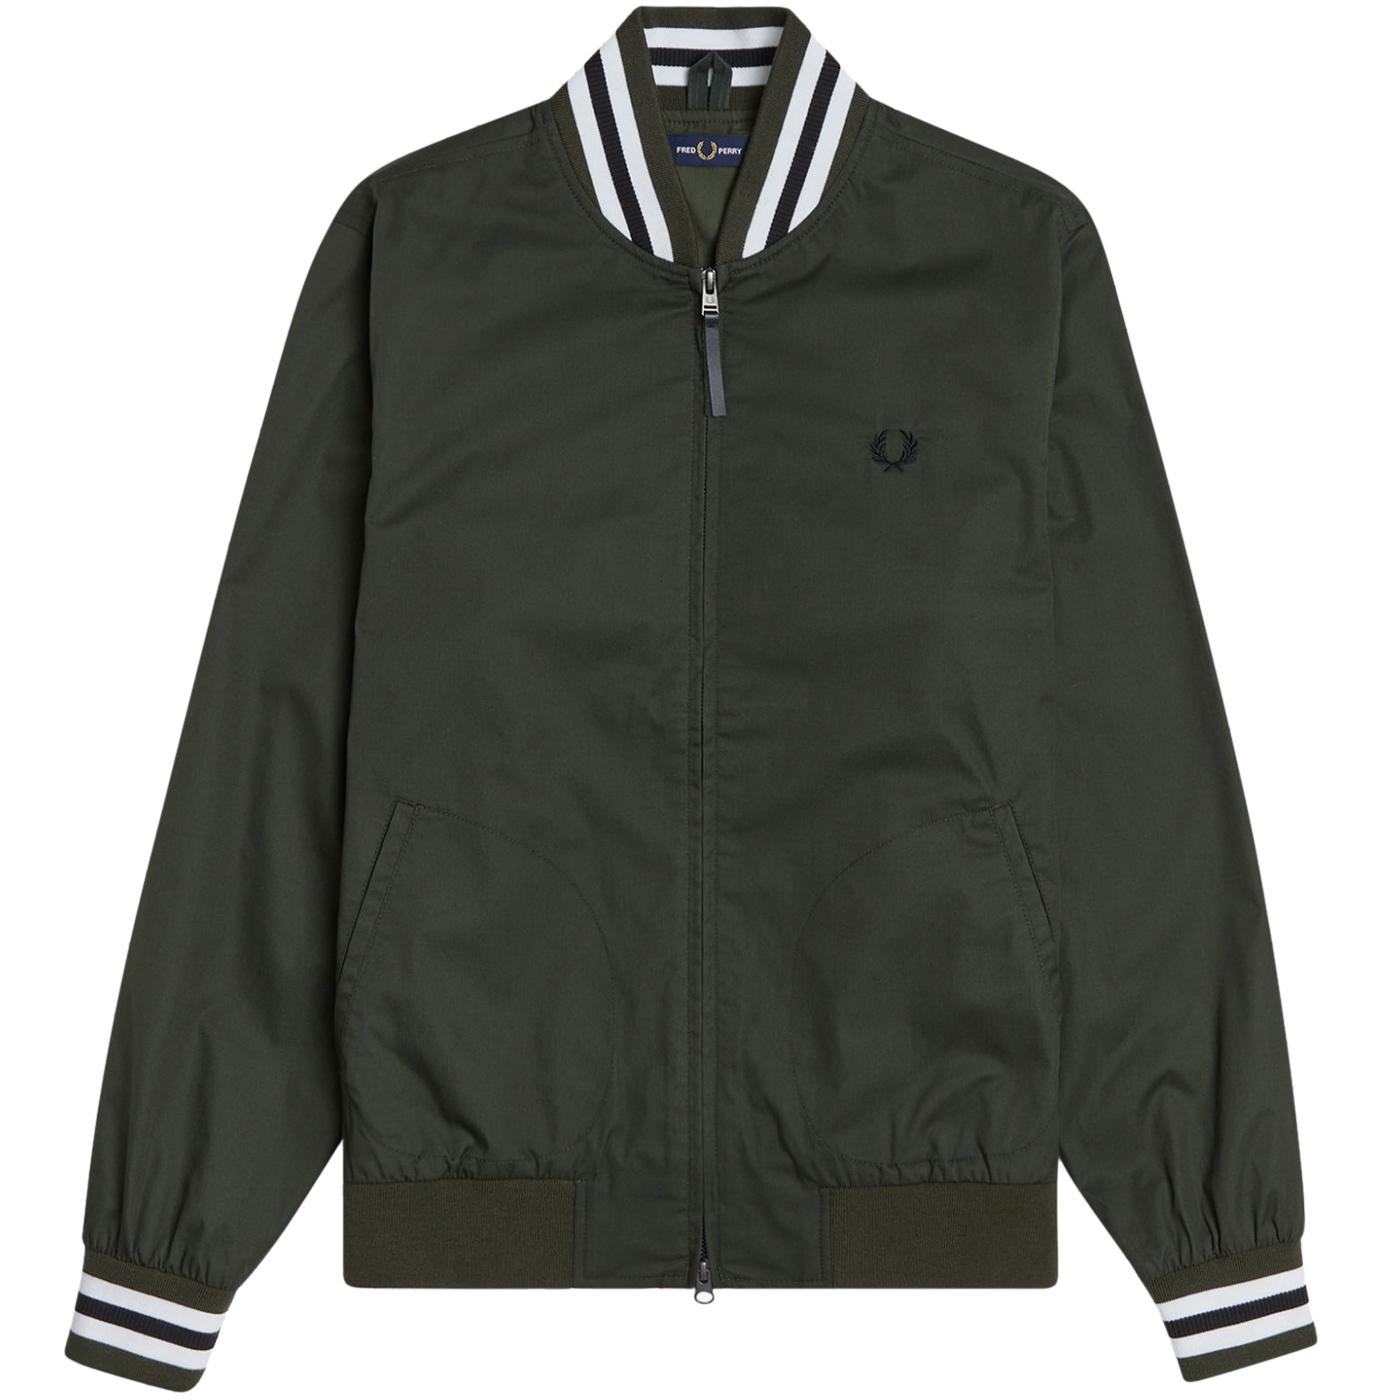 FERD PERRY Mod Tennis Bomber Jacket (Green)